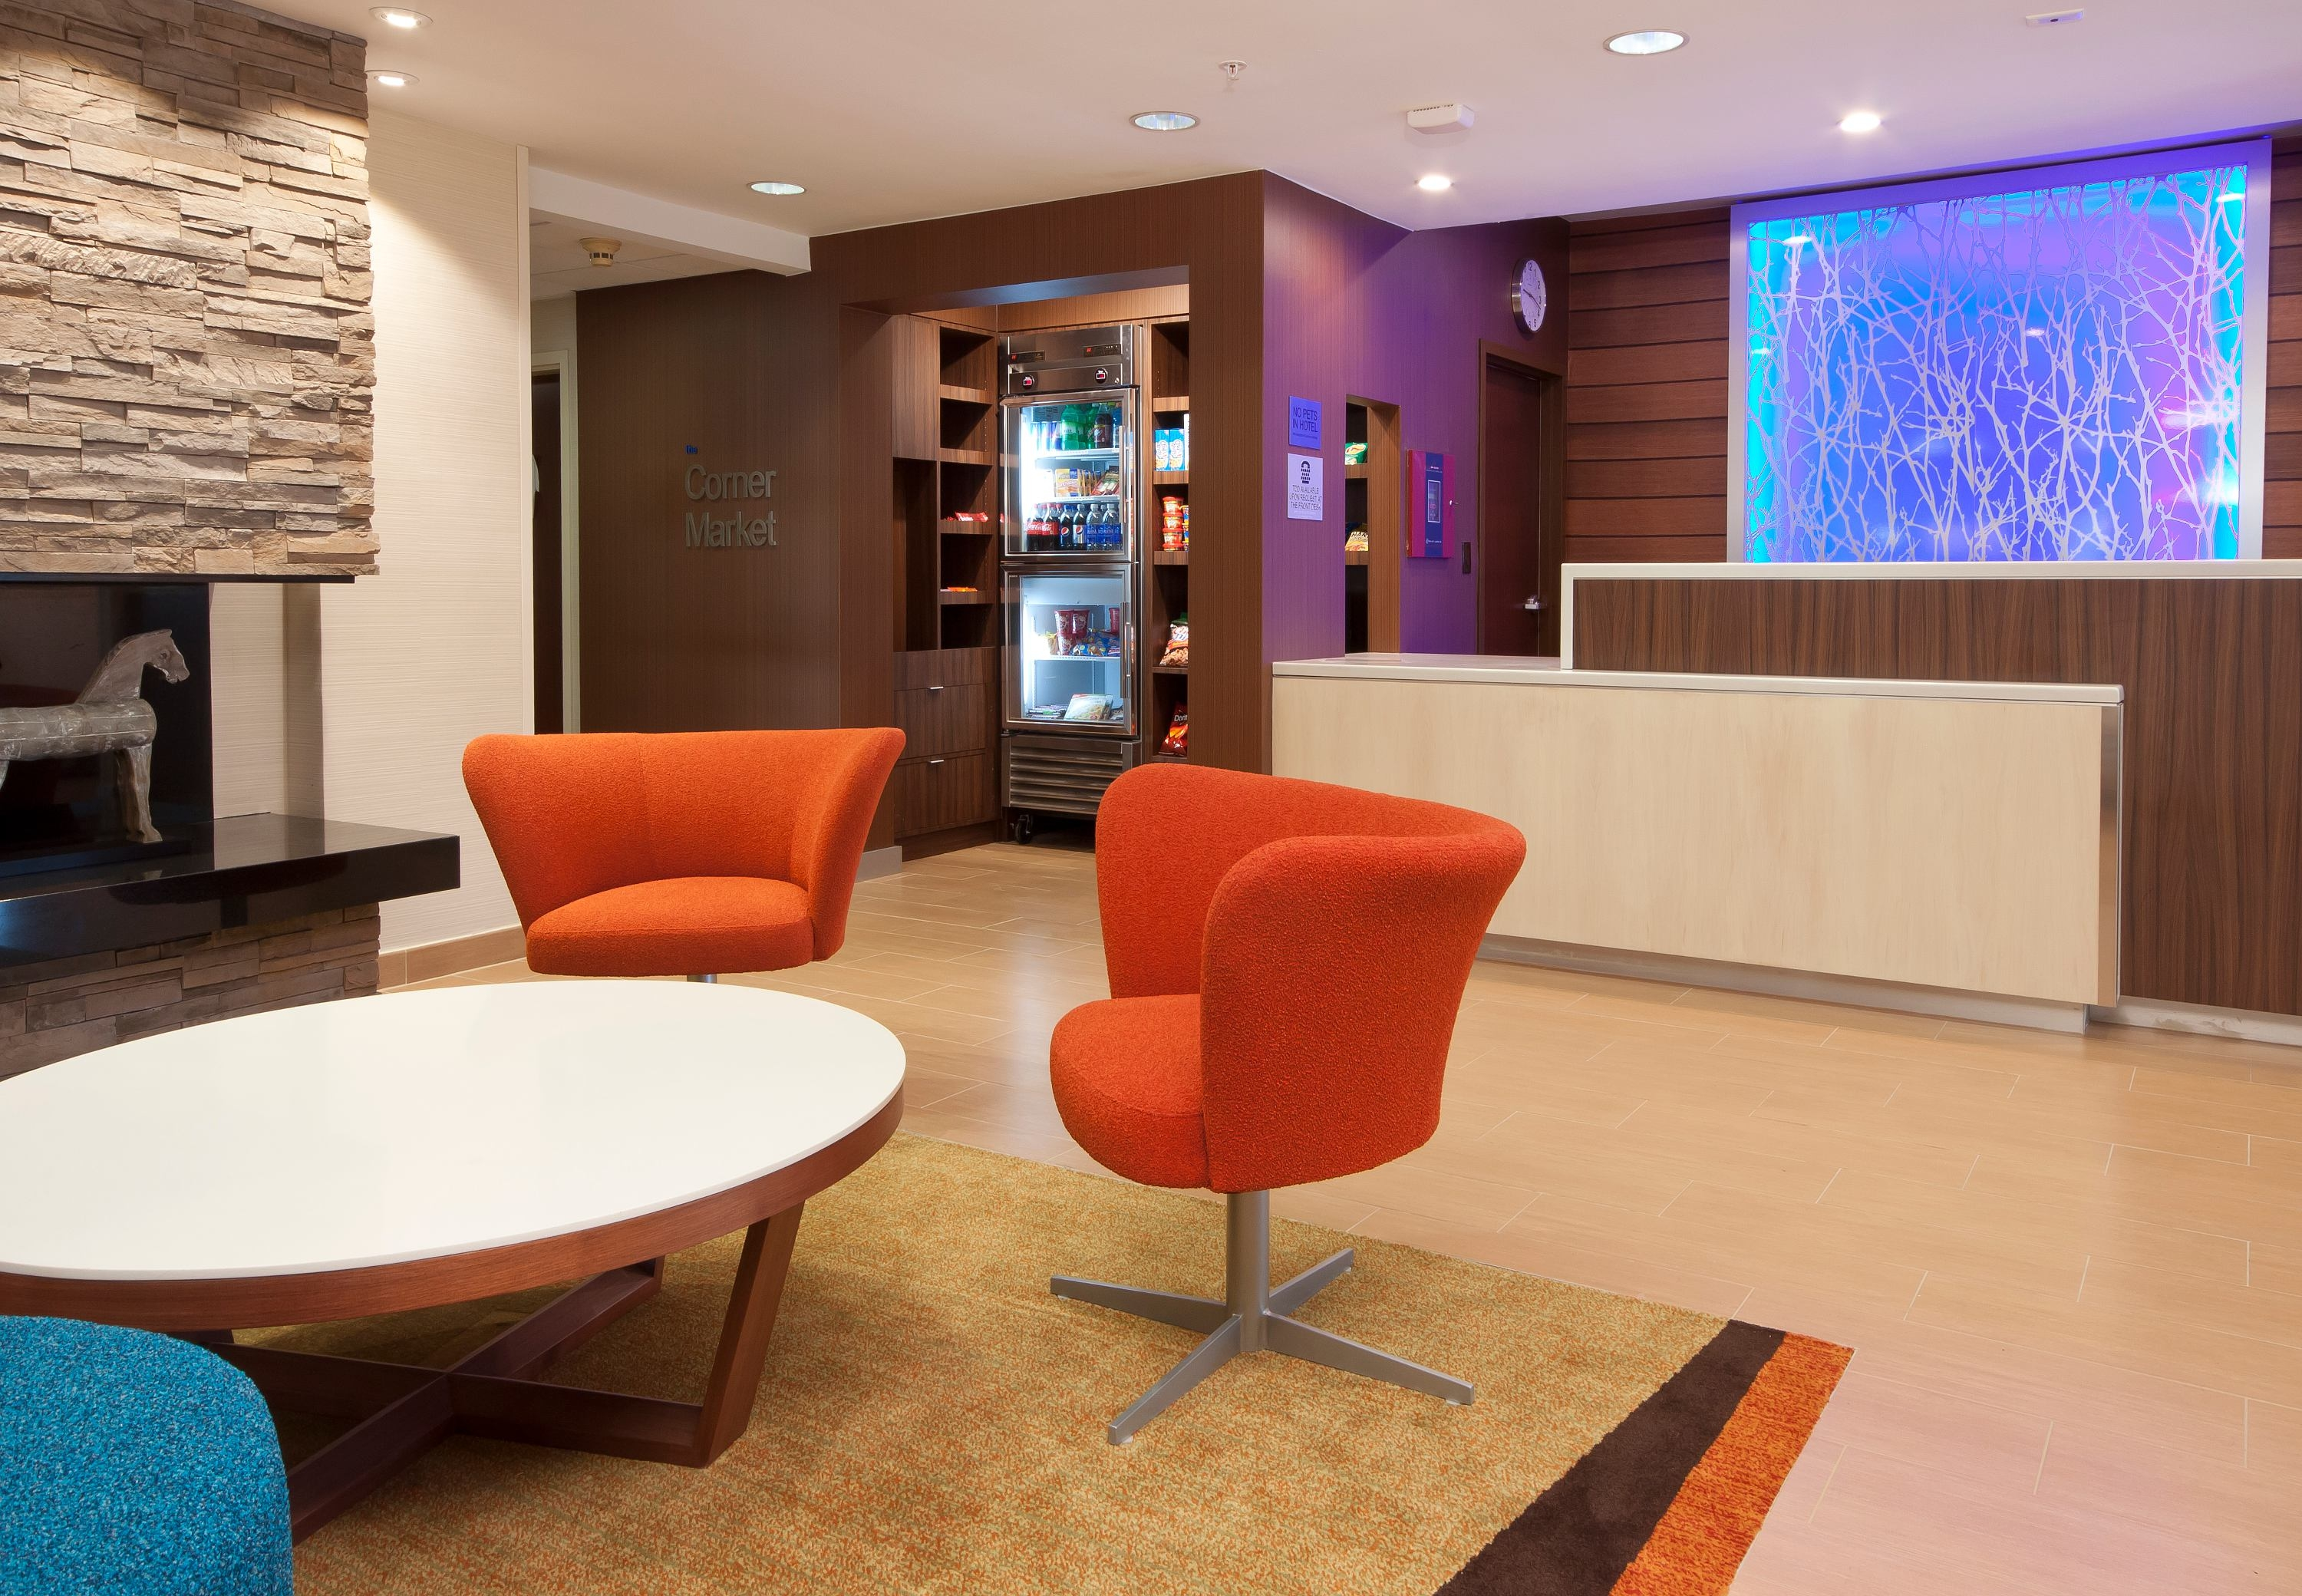 Fairfield Inn & Suites by Marriott Fort Worth/Fossil Creek image 0